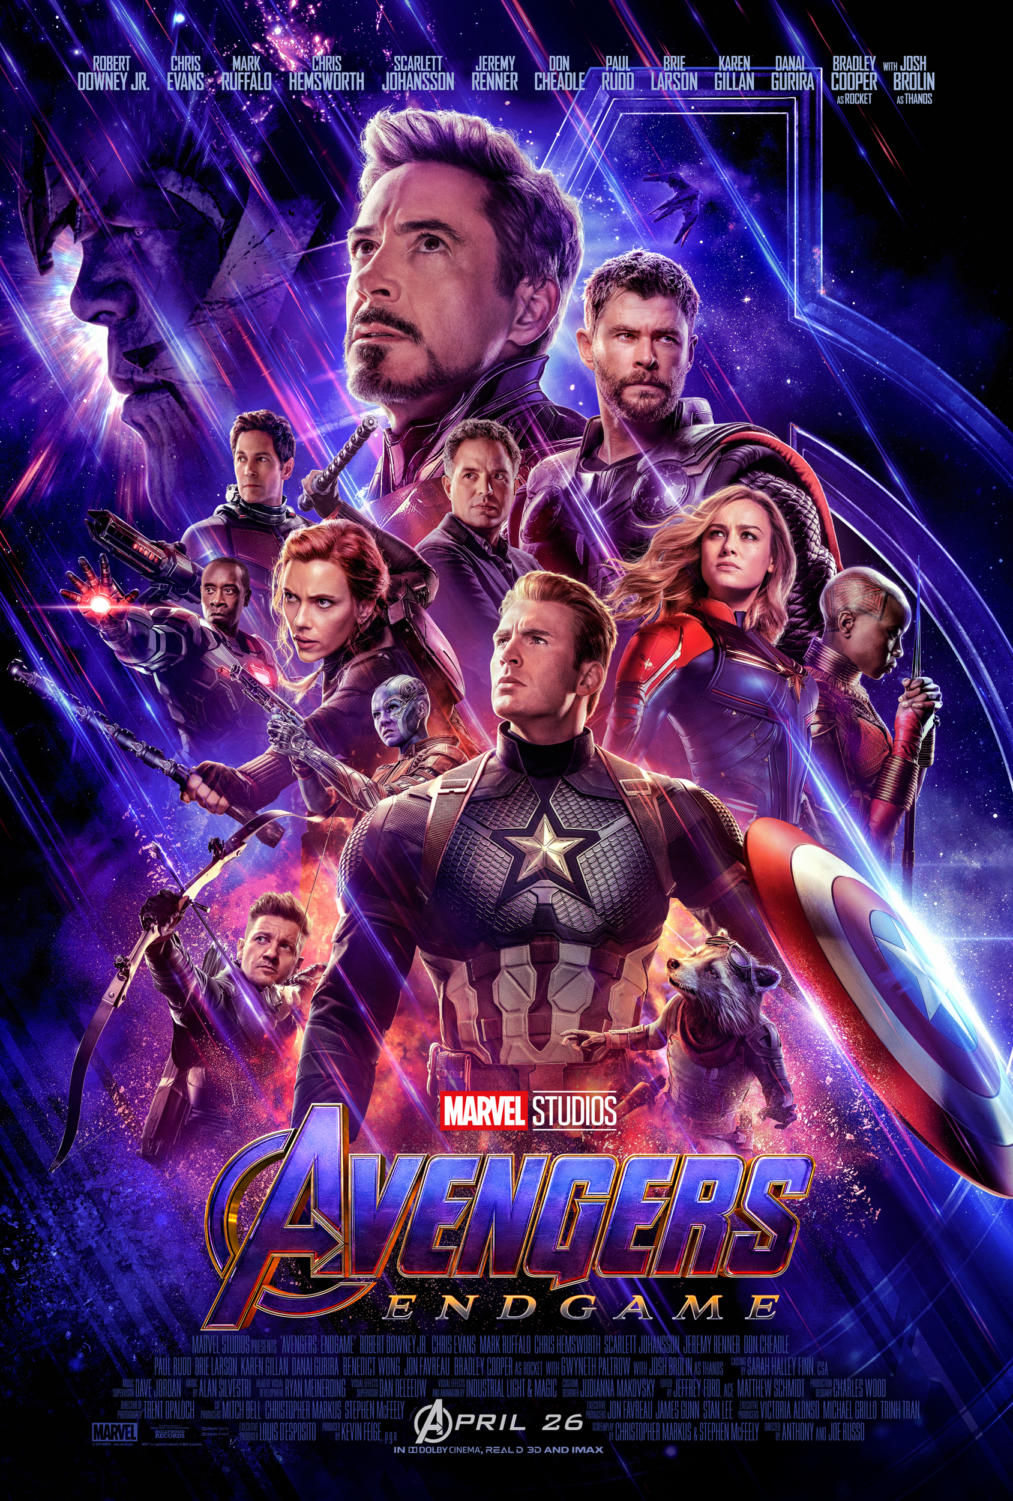 Marvel Studios' Avengers: Endgame released on April 26, making 1.2 billion dollars in its first weekend. The Sidekick staff writer, Anika Arutla, discusses the expectations of the movie and the conclusion to the original six Avengers characters.